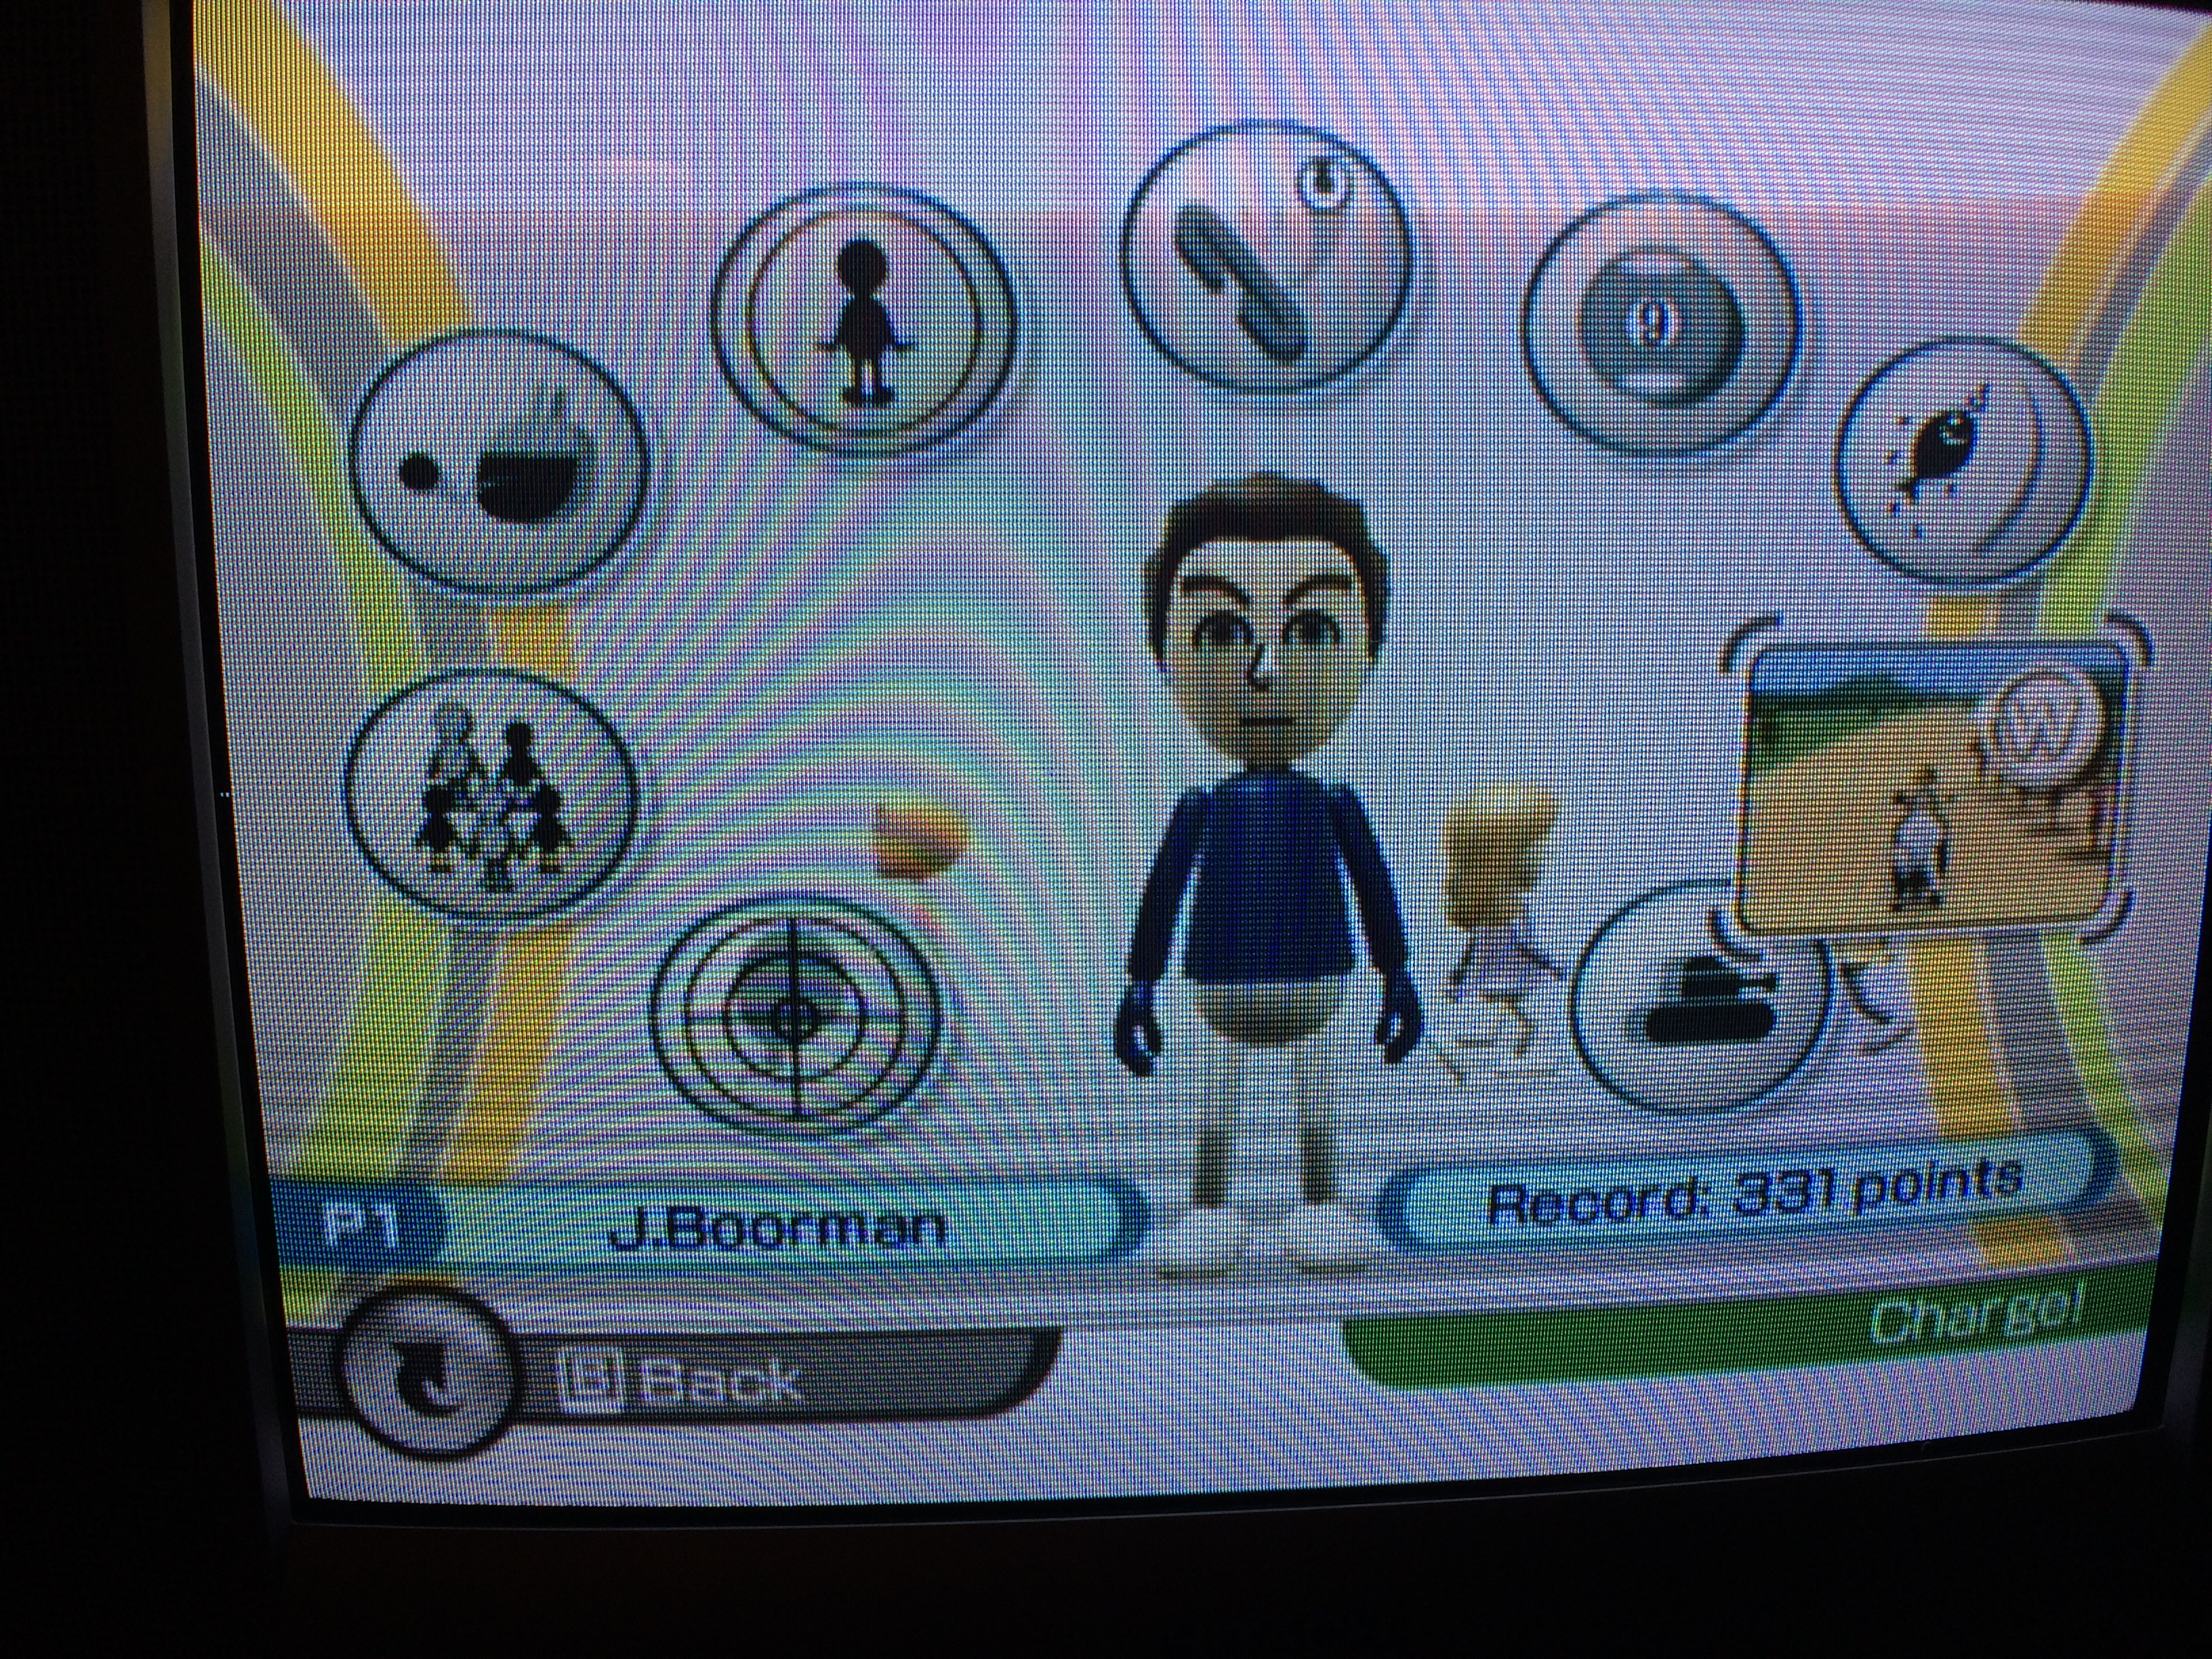 Wii Play: Charge! 331 points